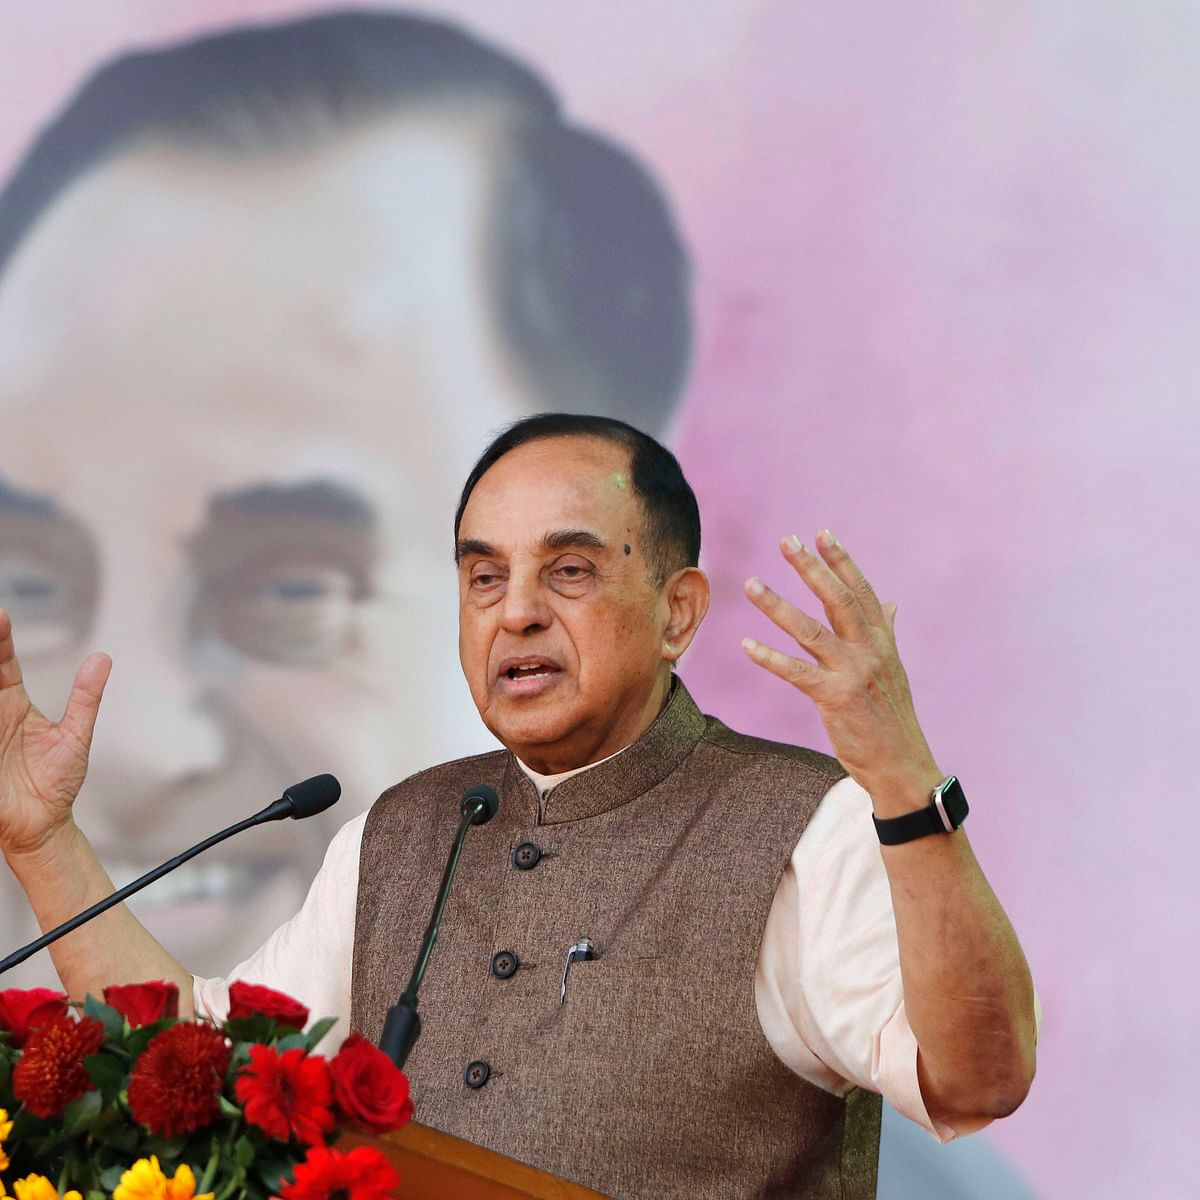 'Hope there is no more delay or waffle': Subramanian Swamy urges govt to declare Ram Setu as ancient historical monument